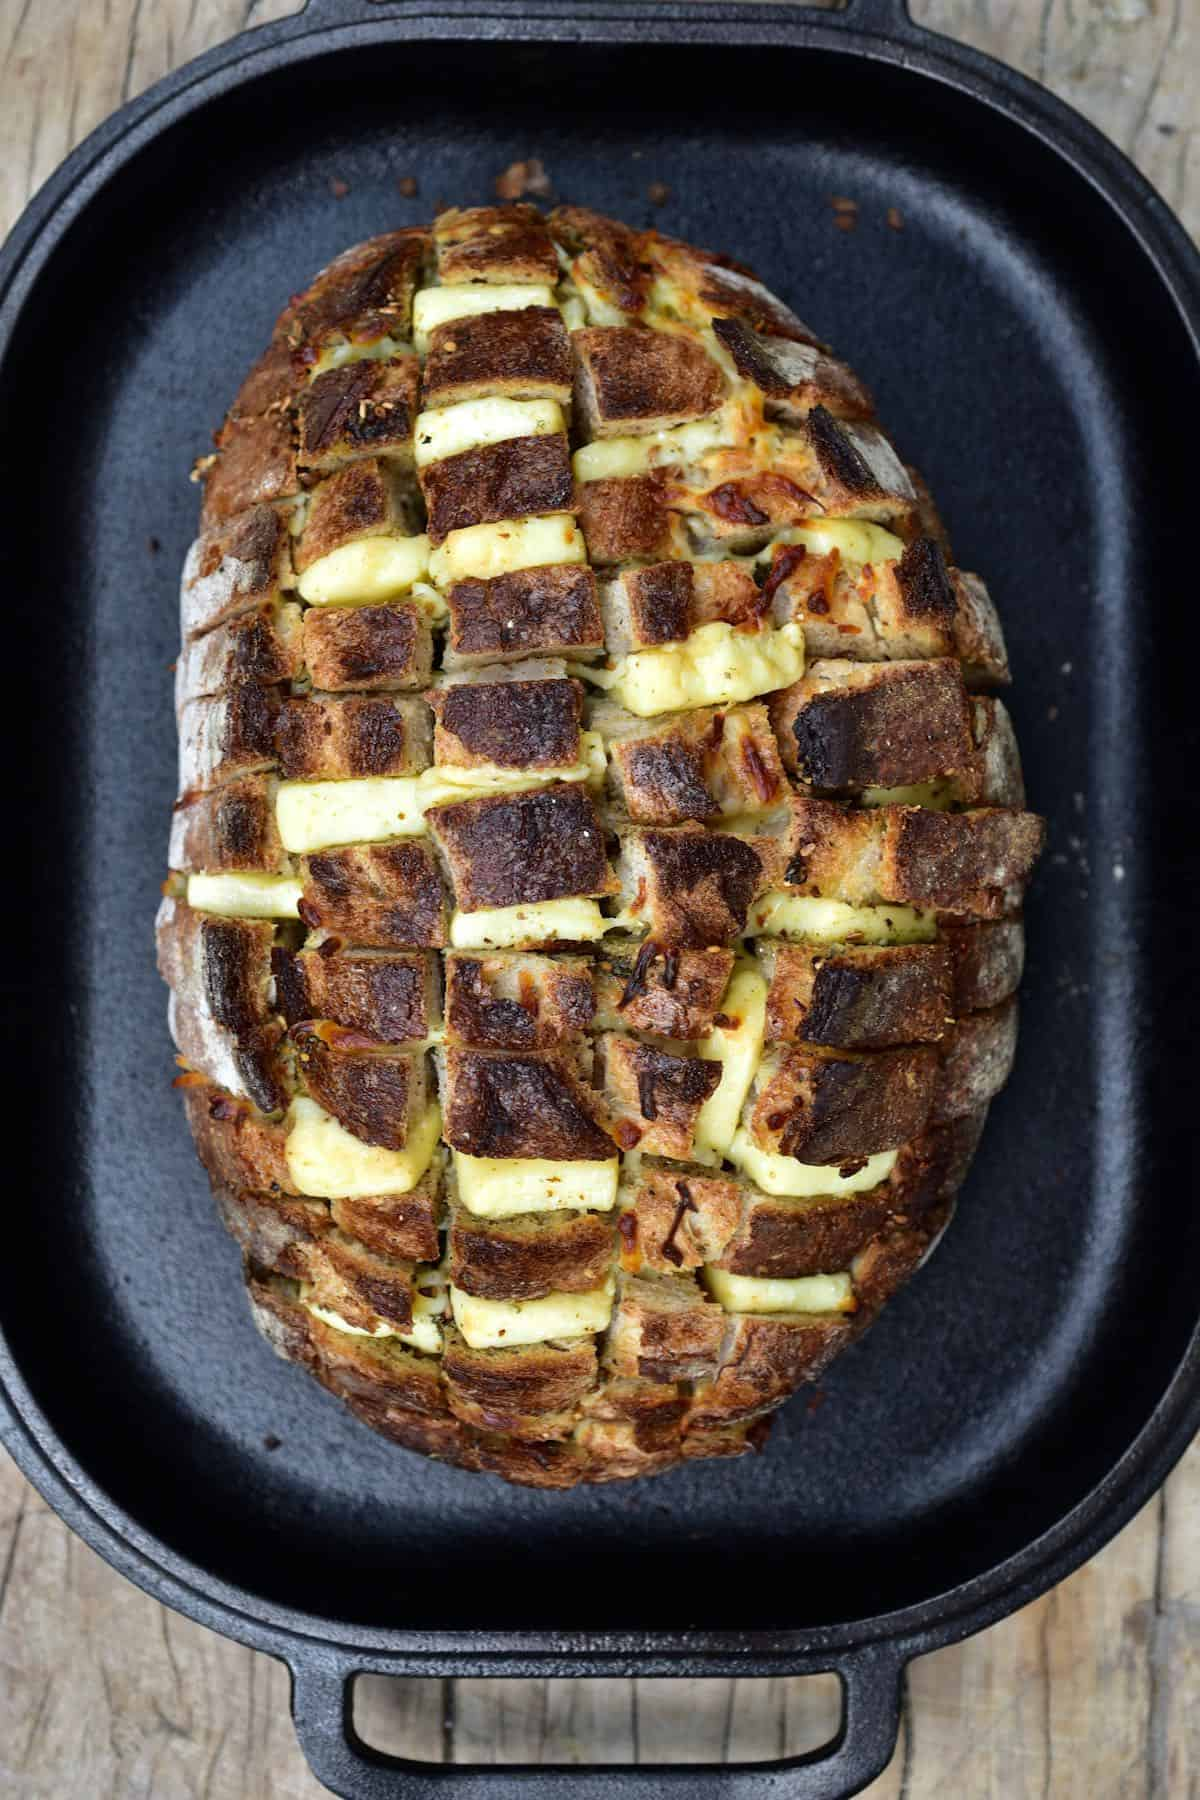 Pull apart cheese sourdough bread in an oven dish